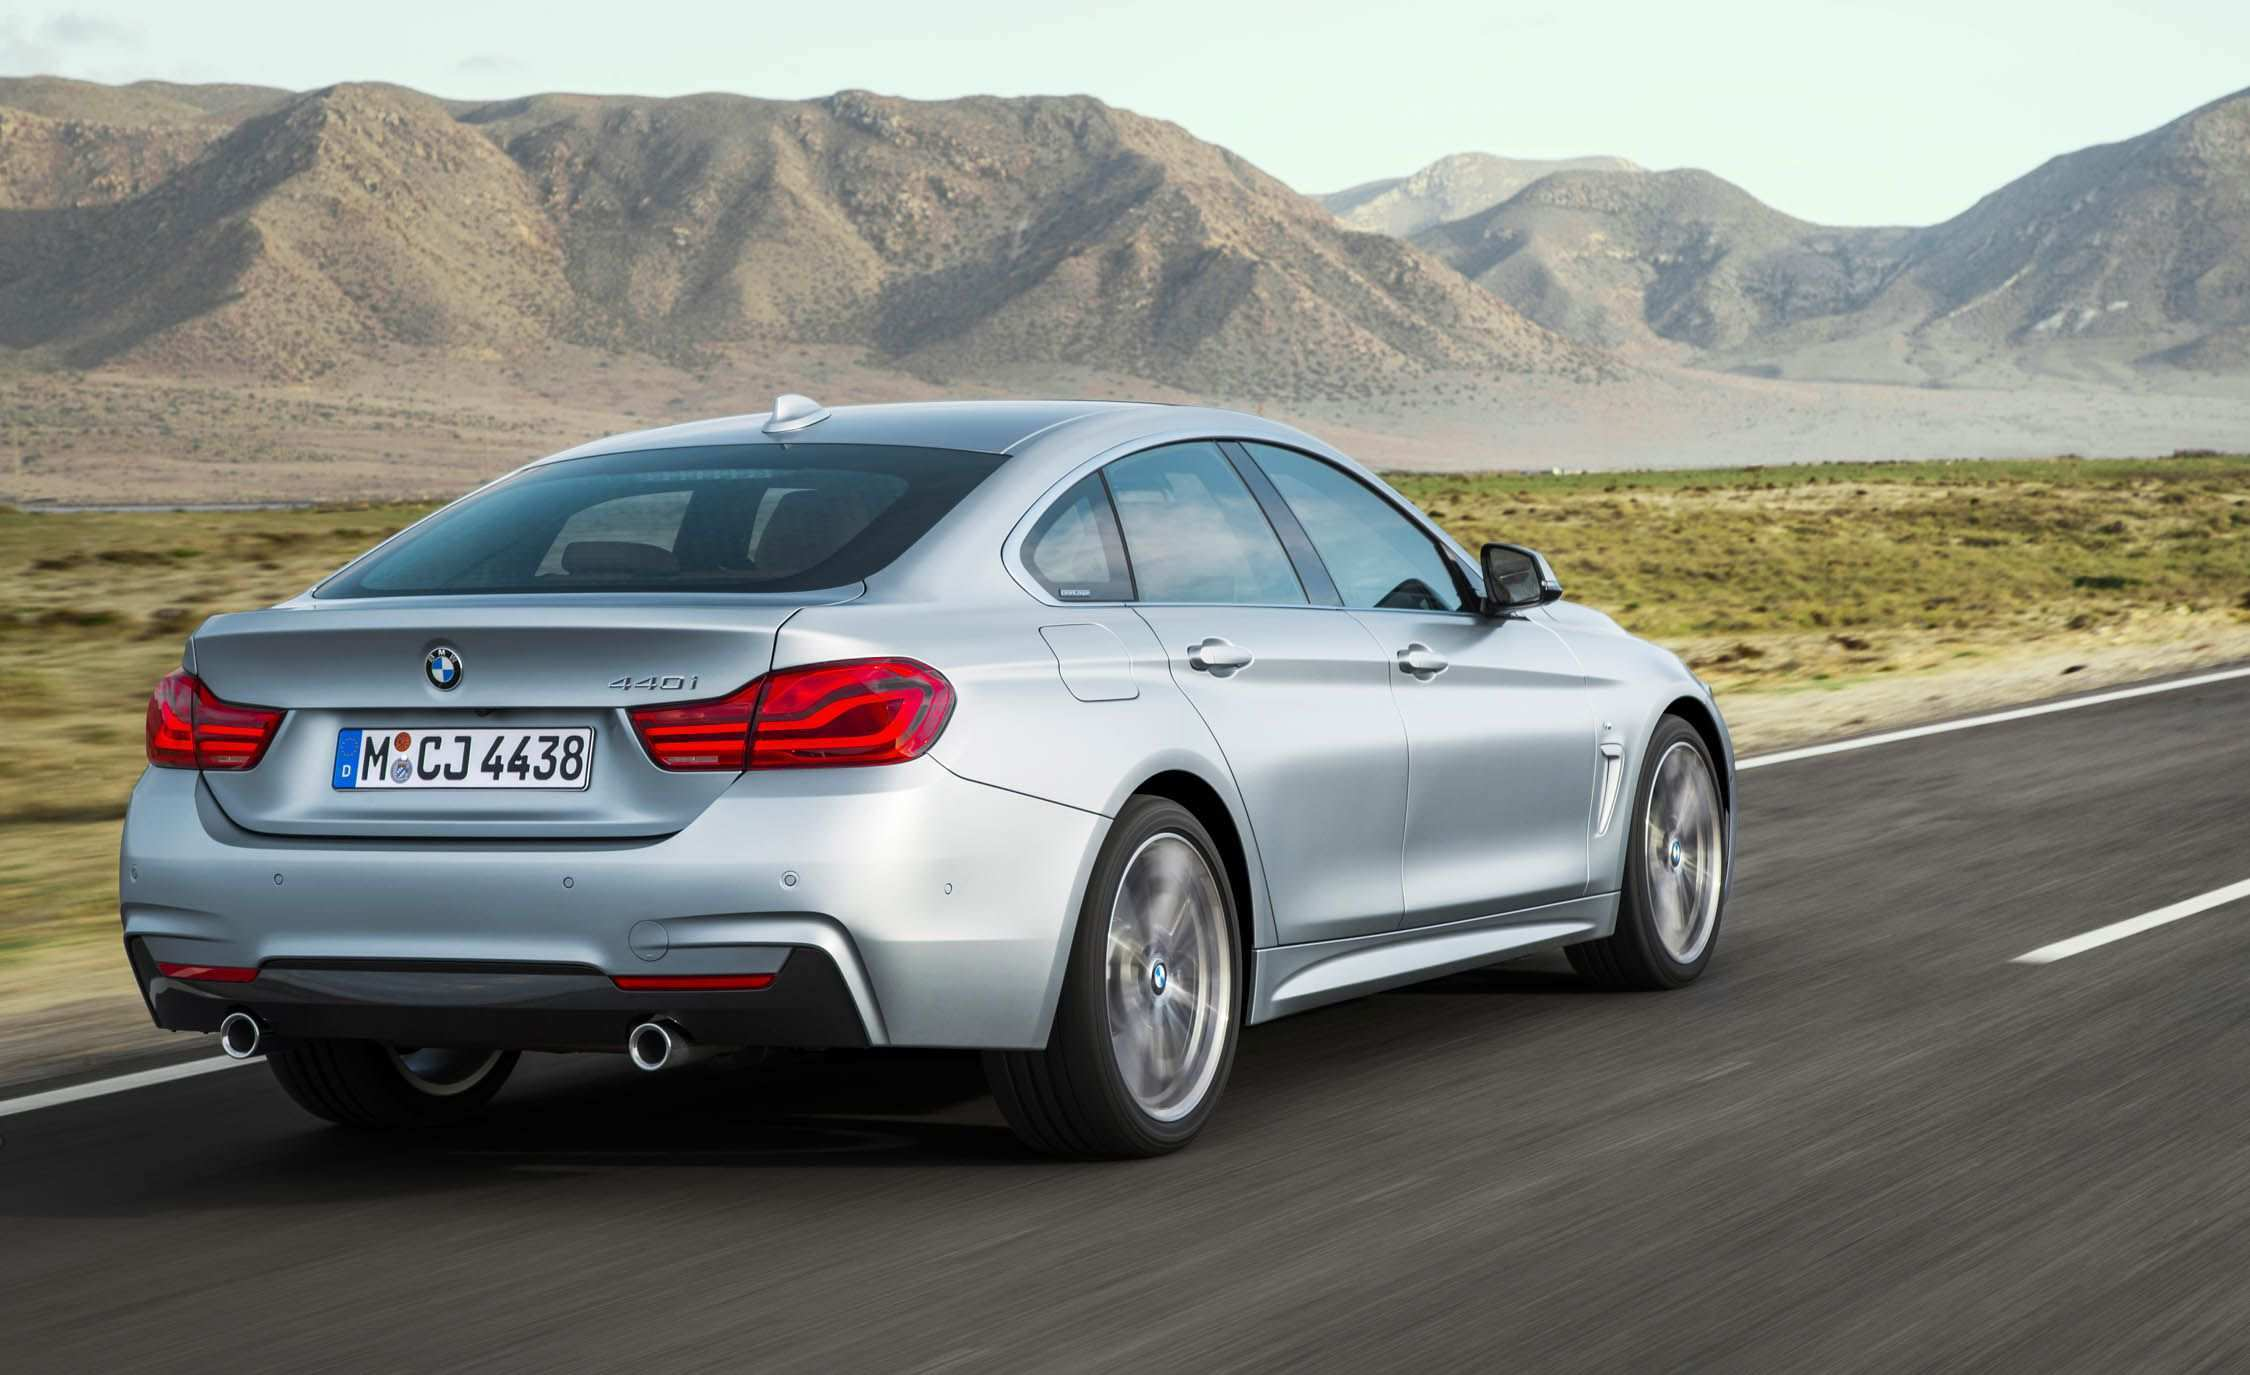 82 Concept of 2020 Bmw 4 Series Gran Coupe Review by 2020 Bmw 4 Series Gran Coupe